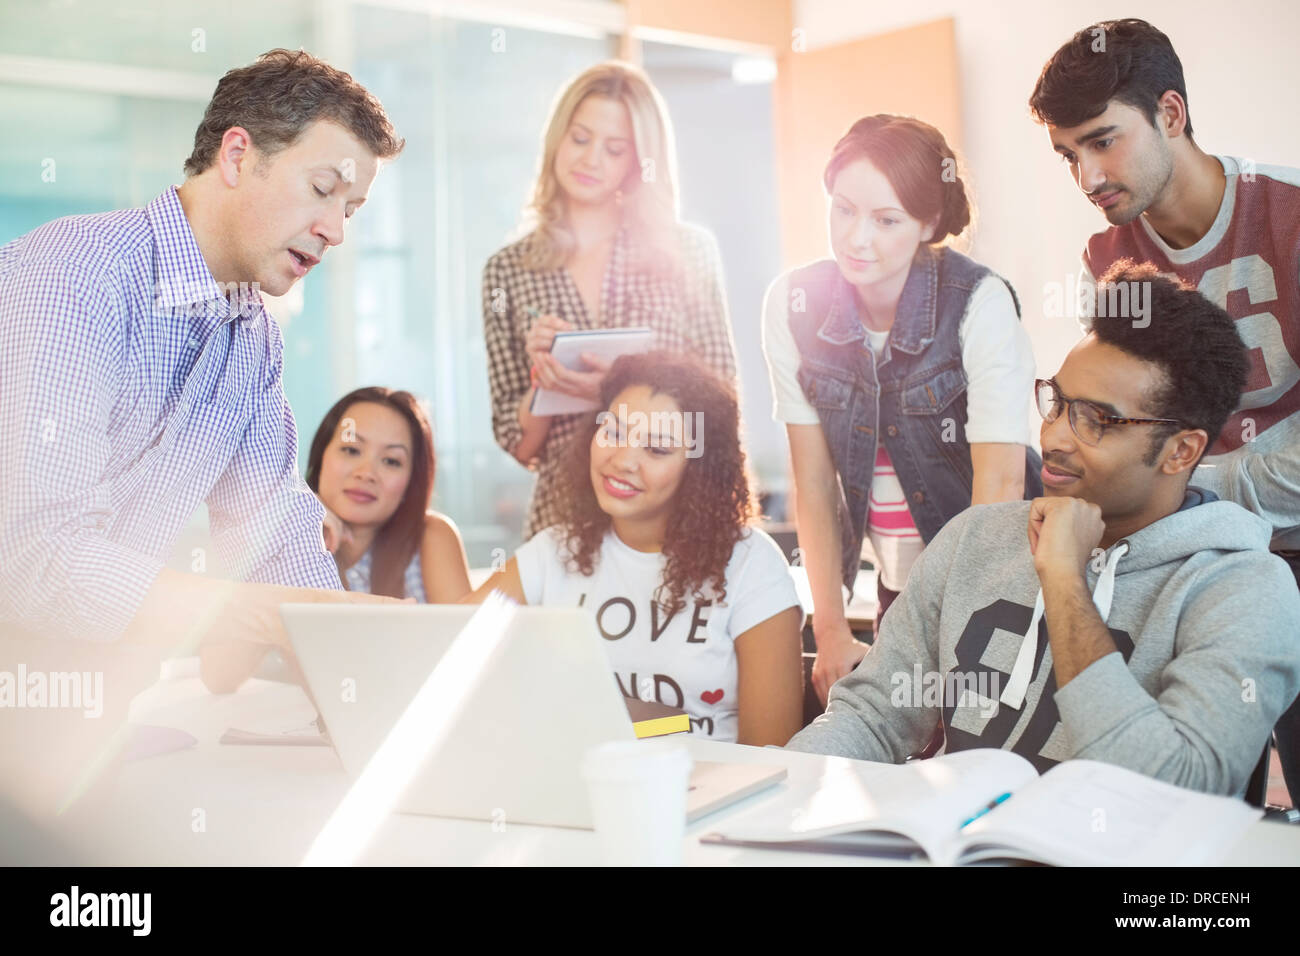 Professor talking to students in classroom - Stock Image